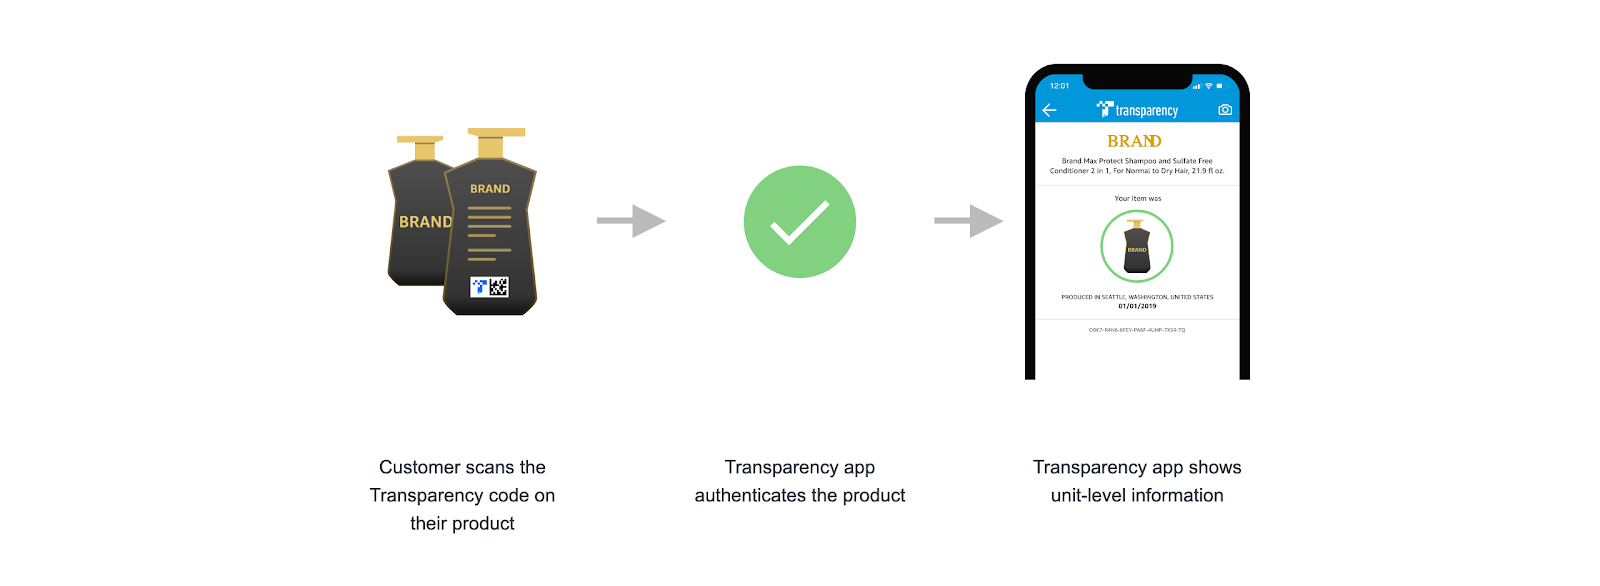 process of verification with Transparency